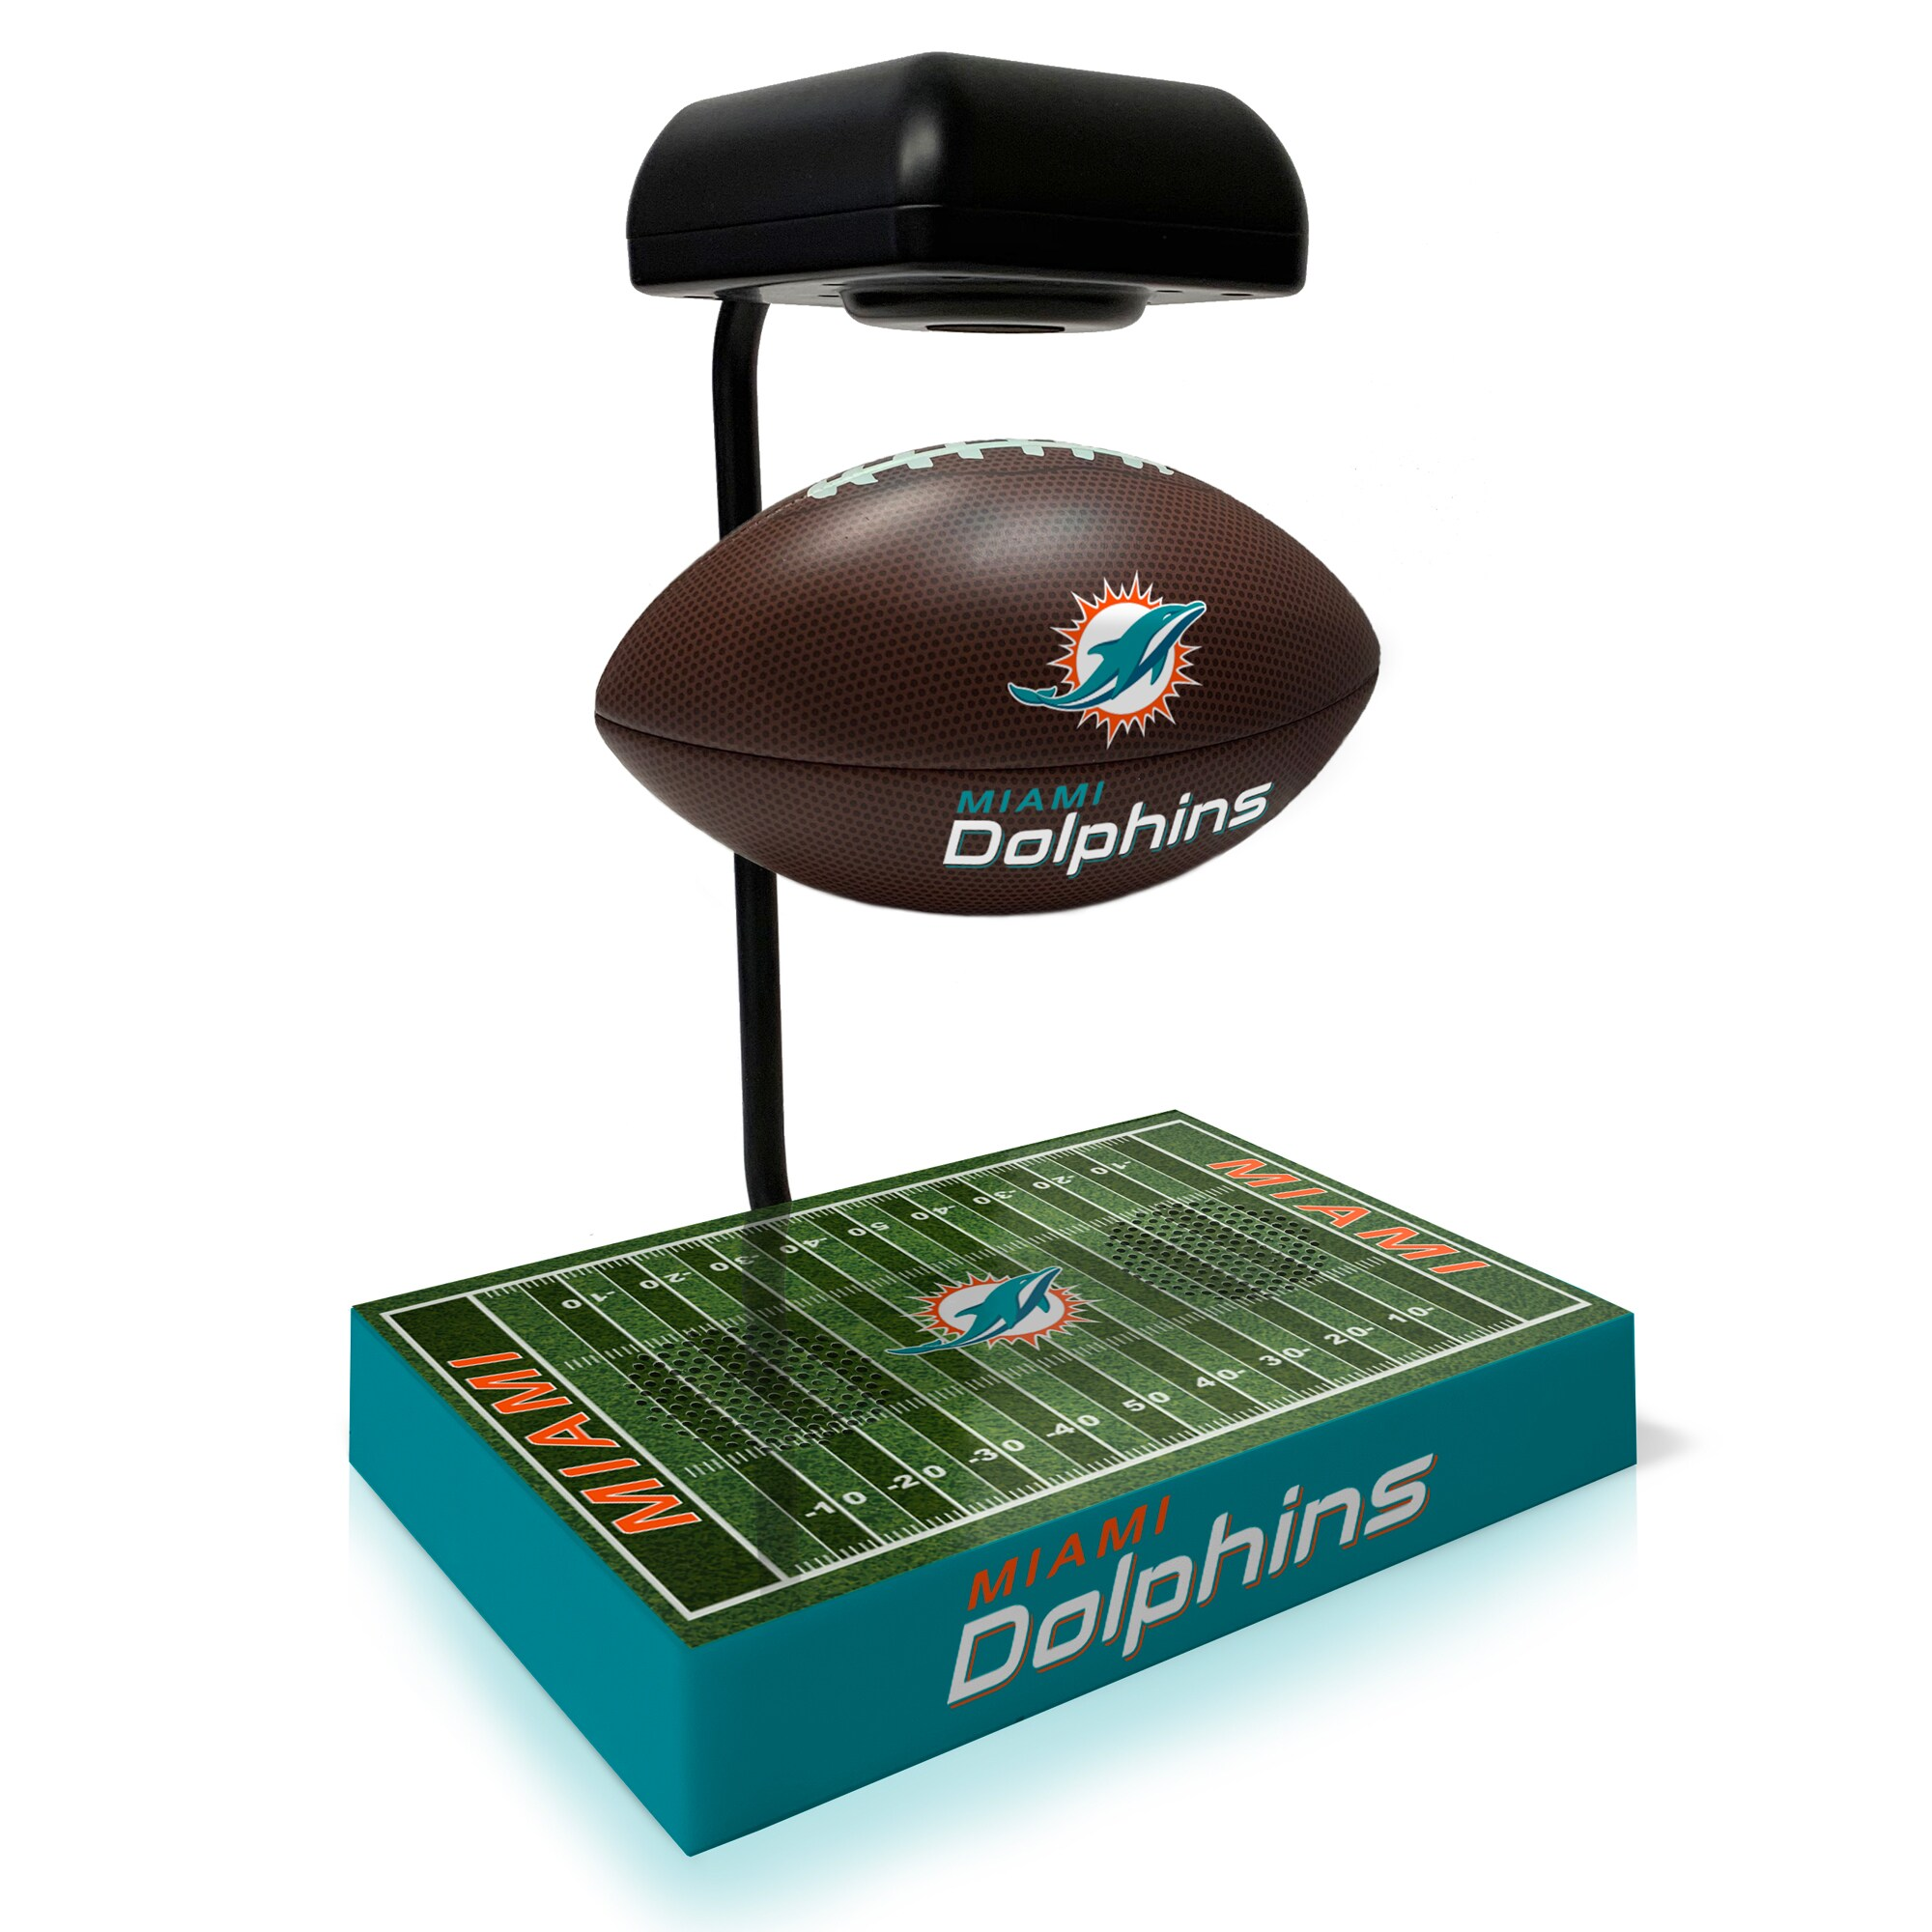 Miami Dolphins Hover Football With Bluetooth Speaker